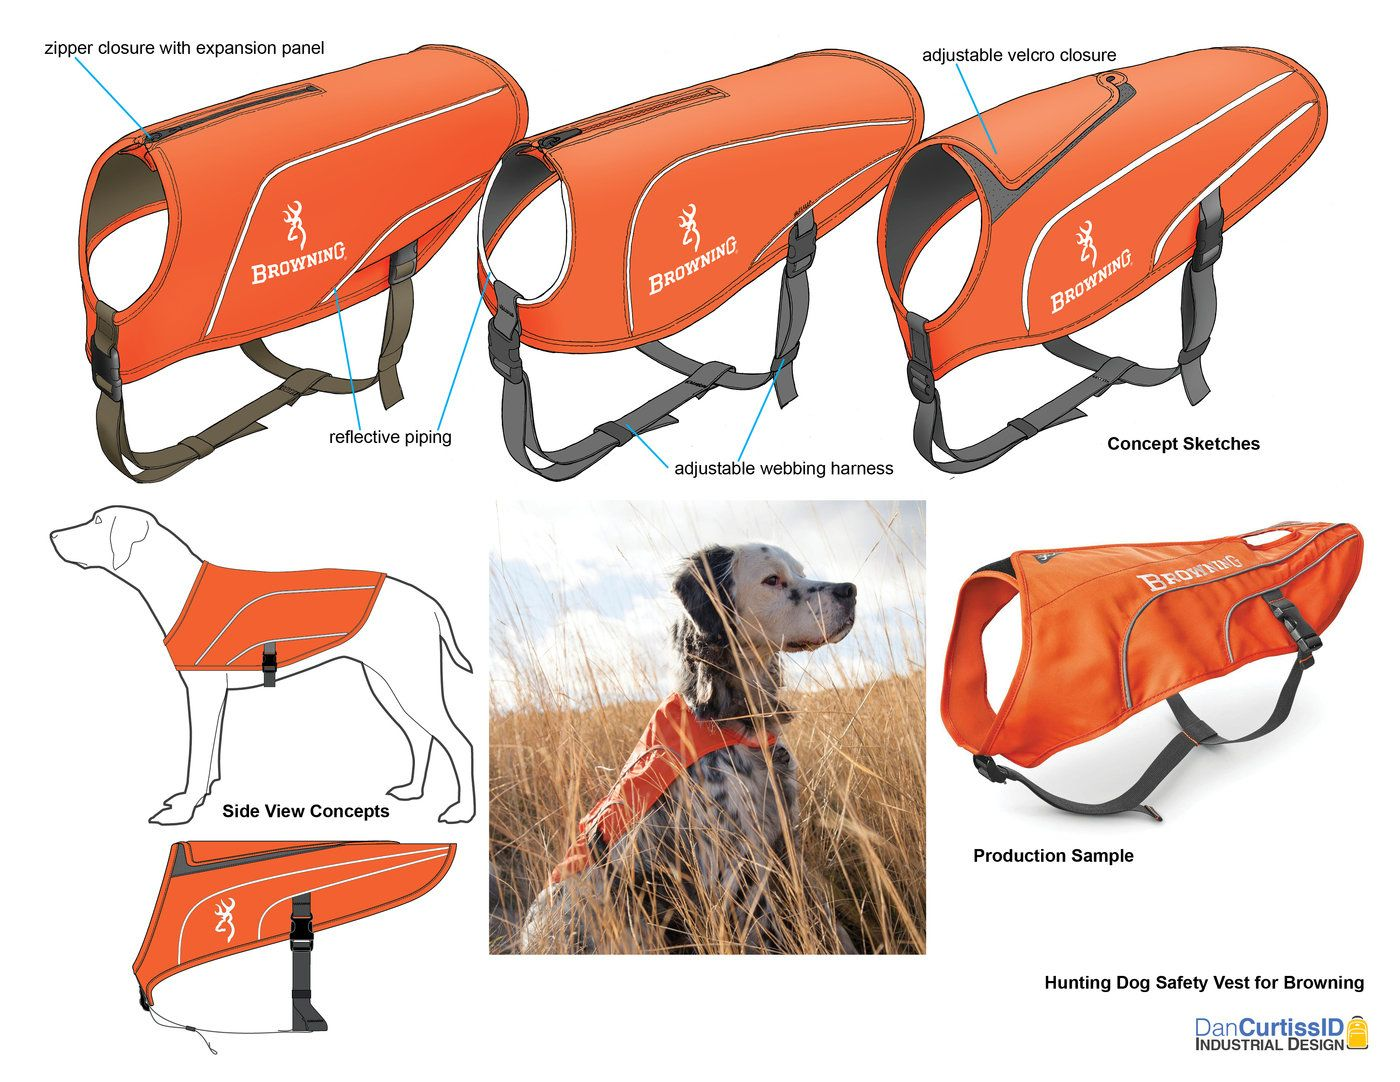 Safety Vest and Skid Plate for Hunting Dogs by Dan Curtiss